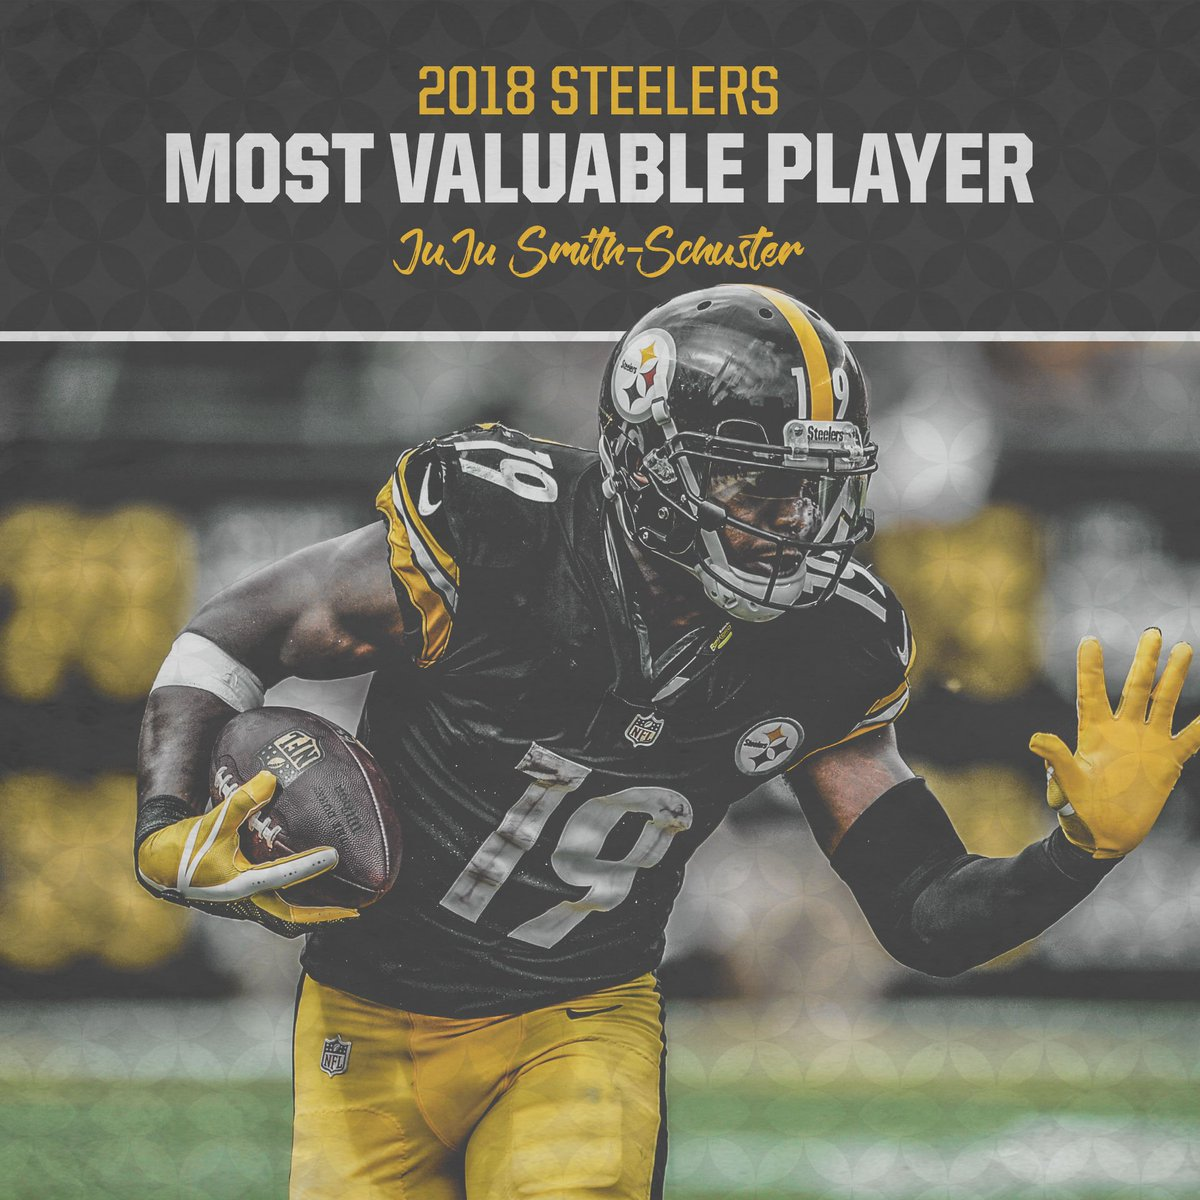 20d8c5e98f4 Pittsburgh Steelers on Twitter